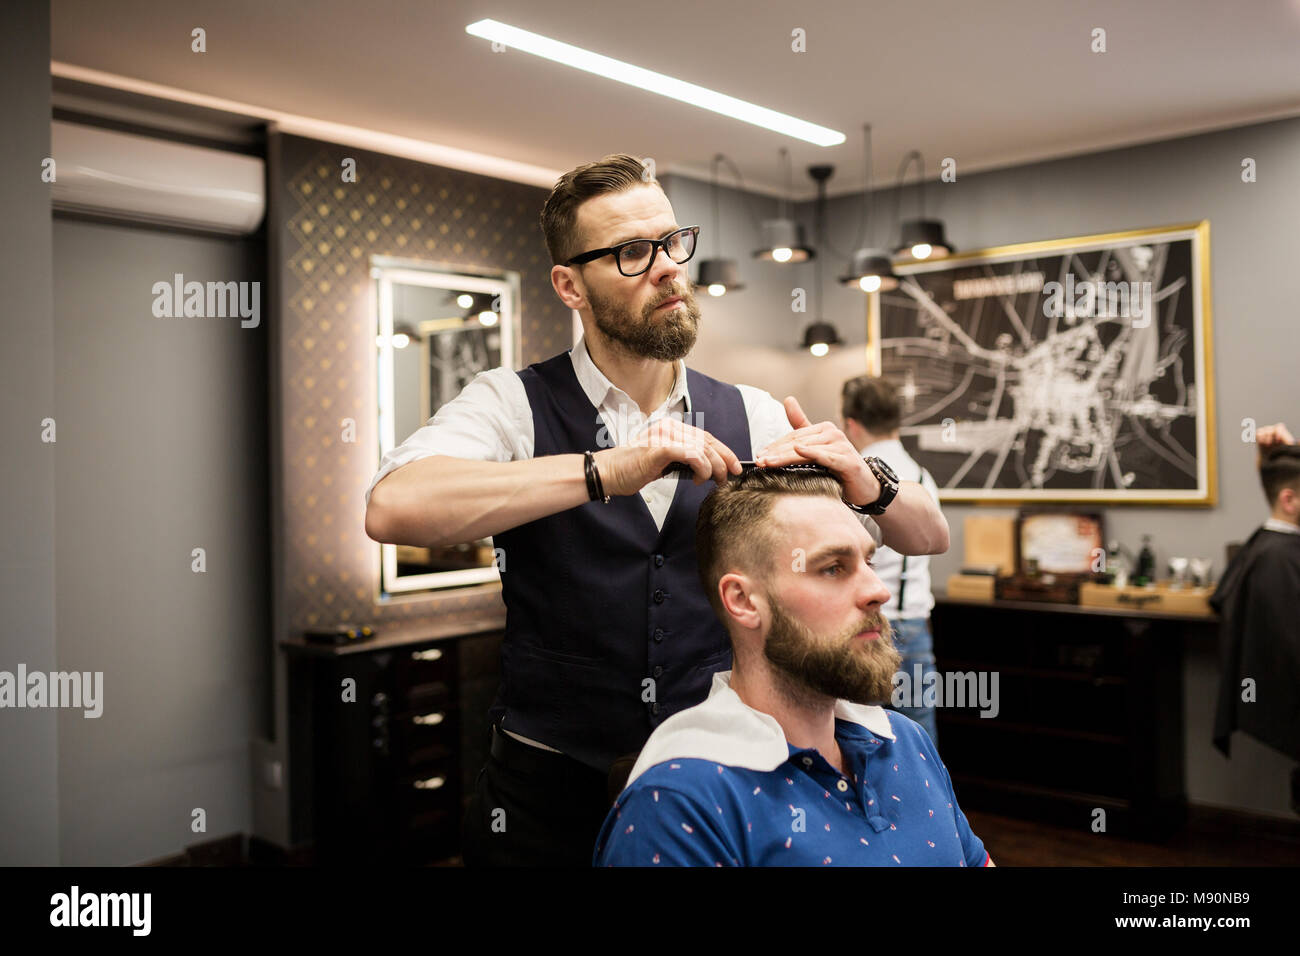 Portrait of hairdresser combing customer hair - Stock Image